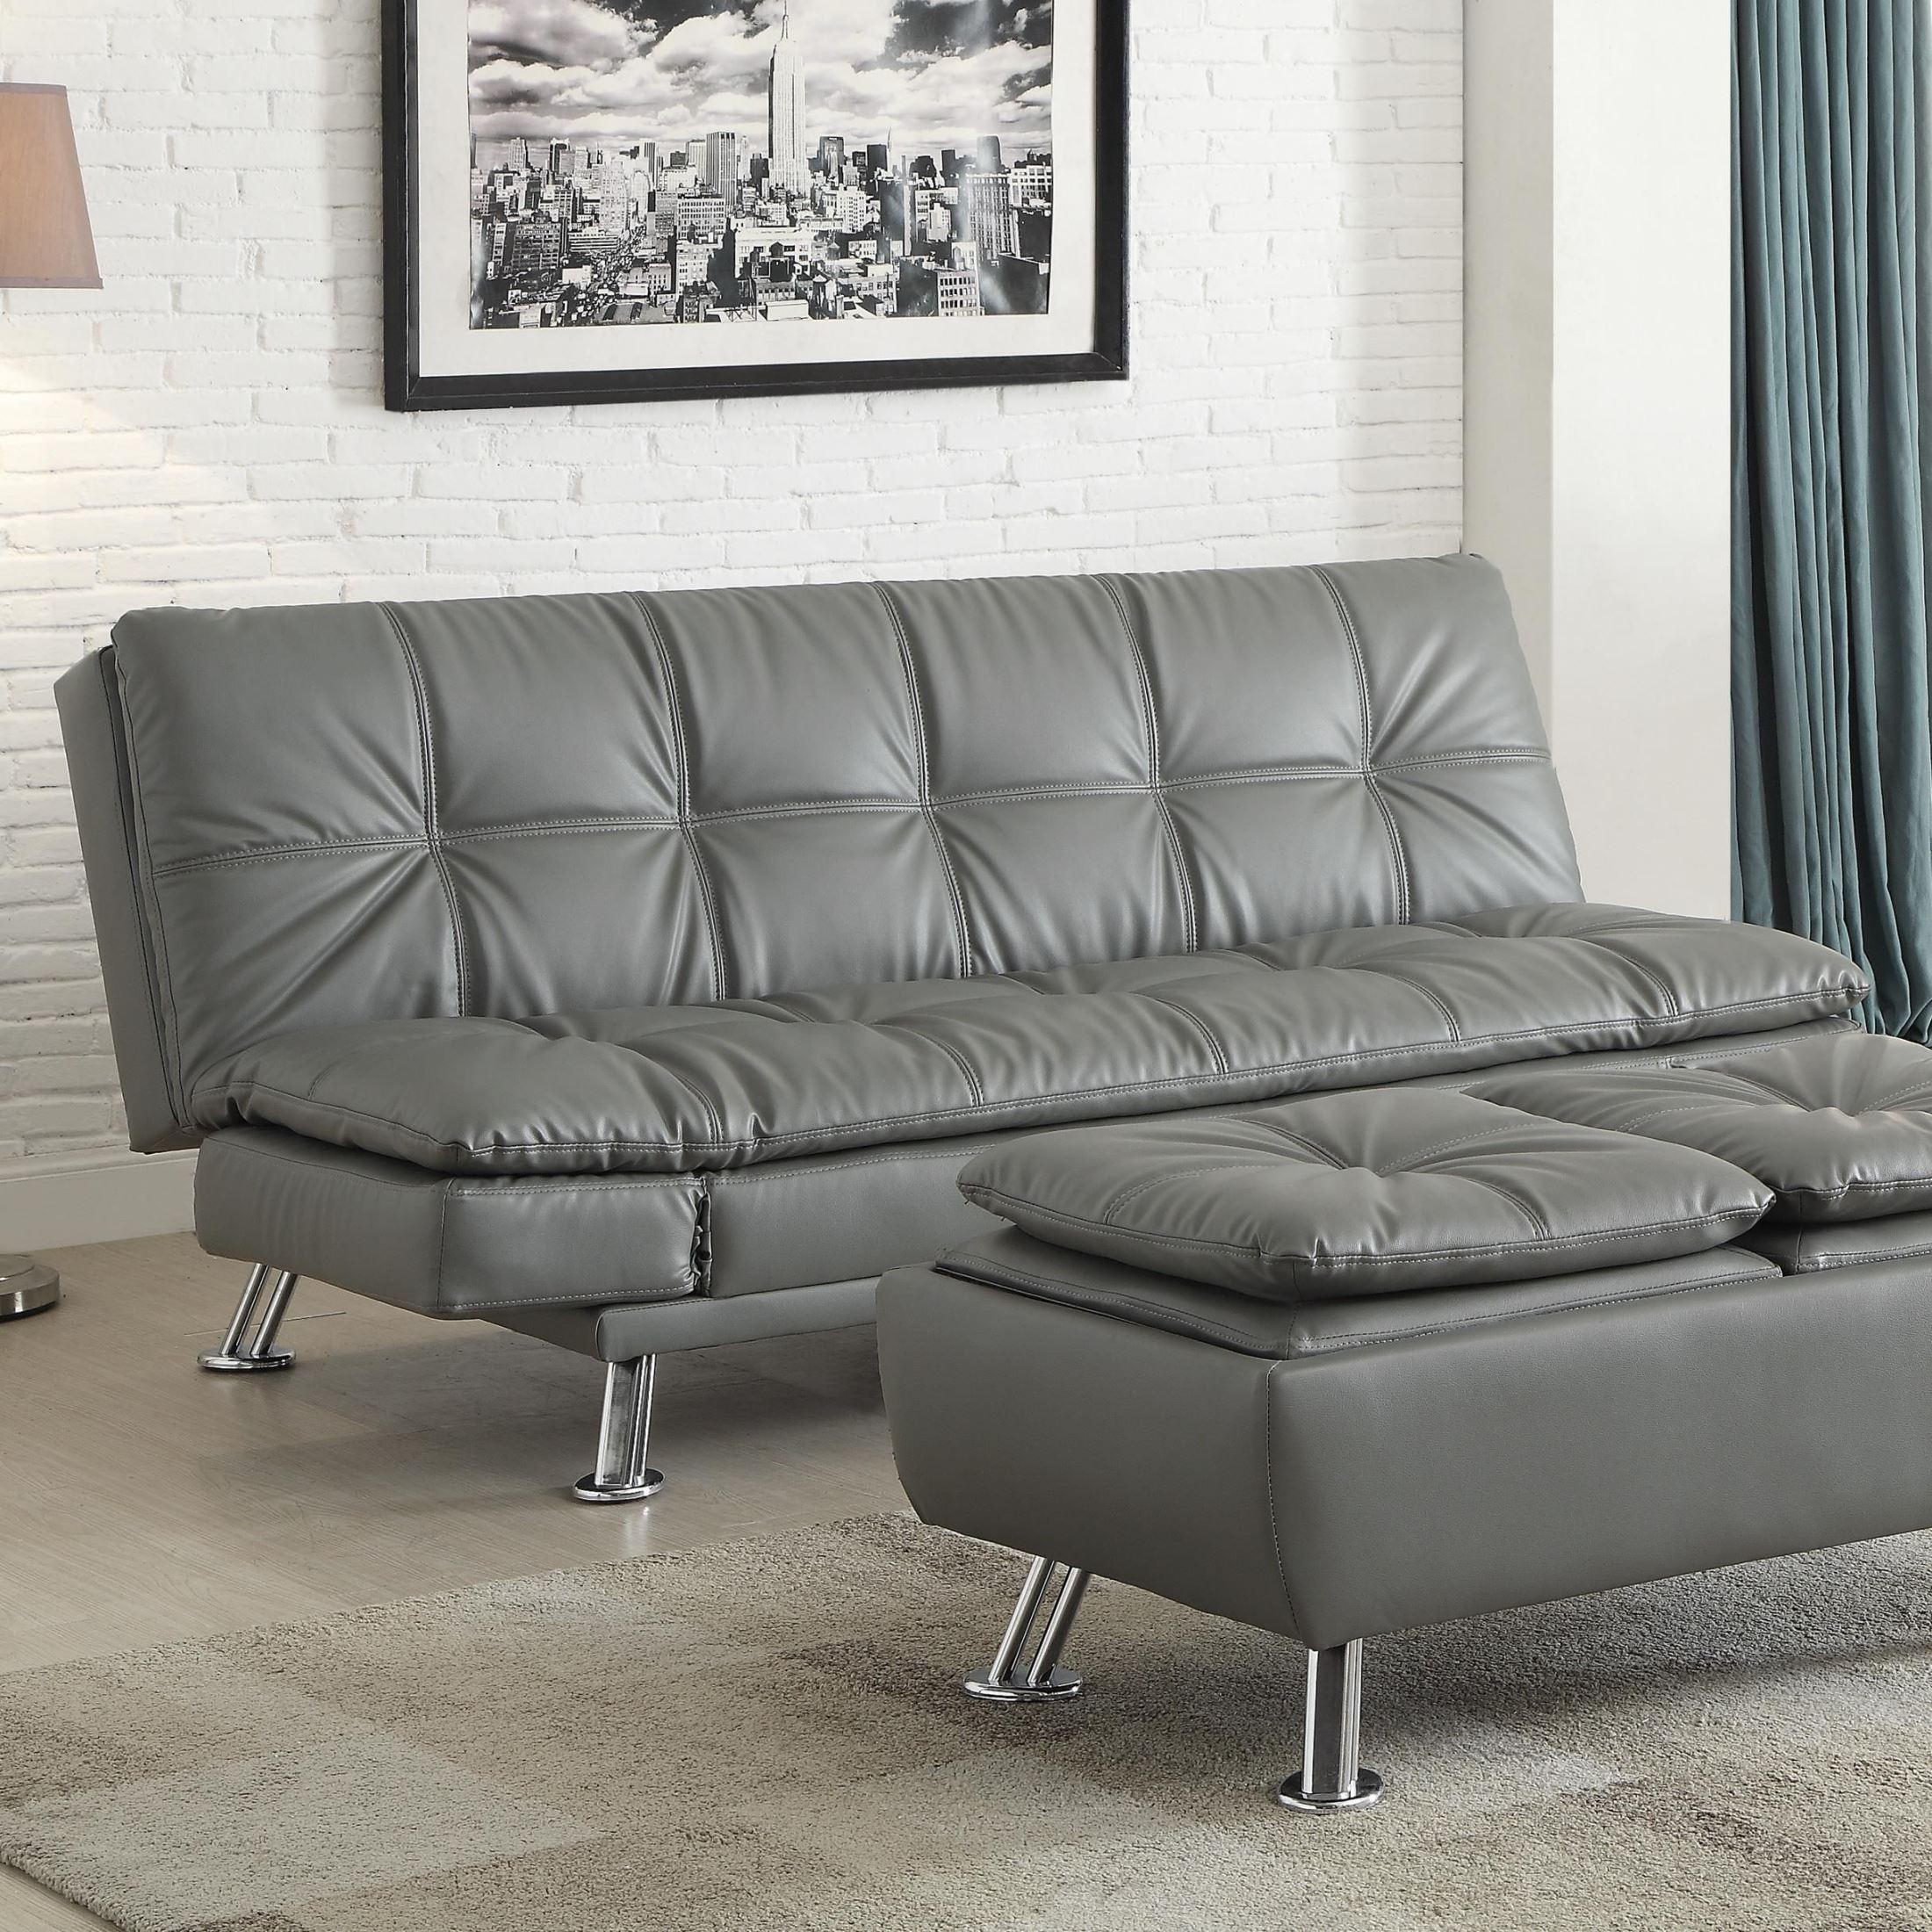 Dilleston Futon Style Living Room Set From Coaster 500096 Coleman Furniture